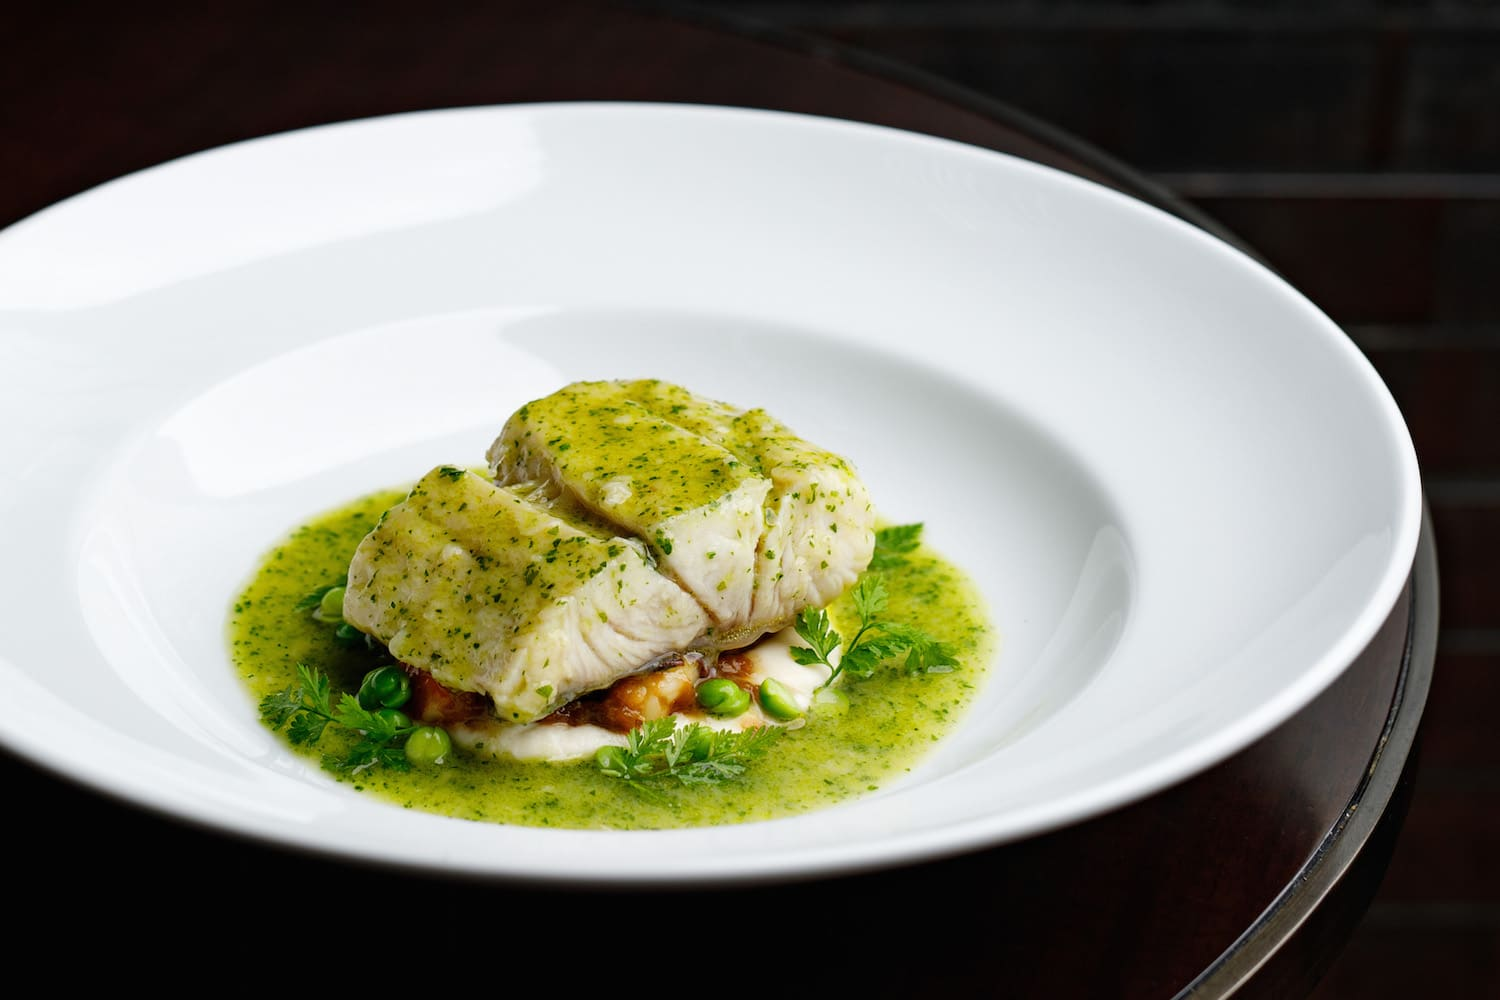 Review: The Brasserie at St. Regis KL takes you on a journey of Basque cuisine